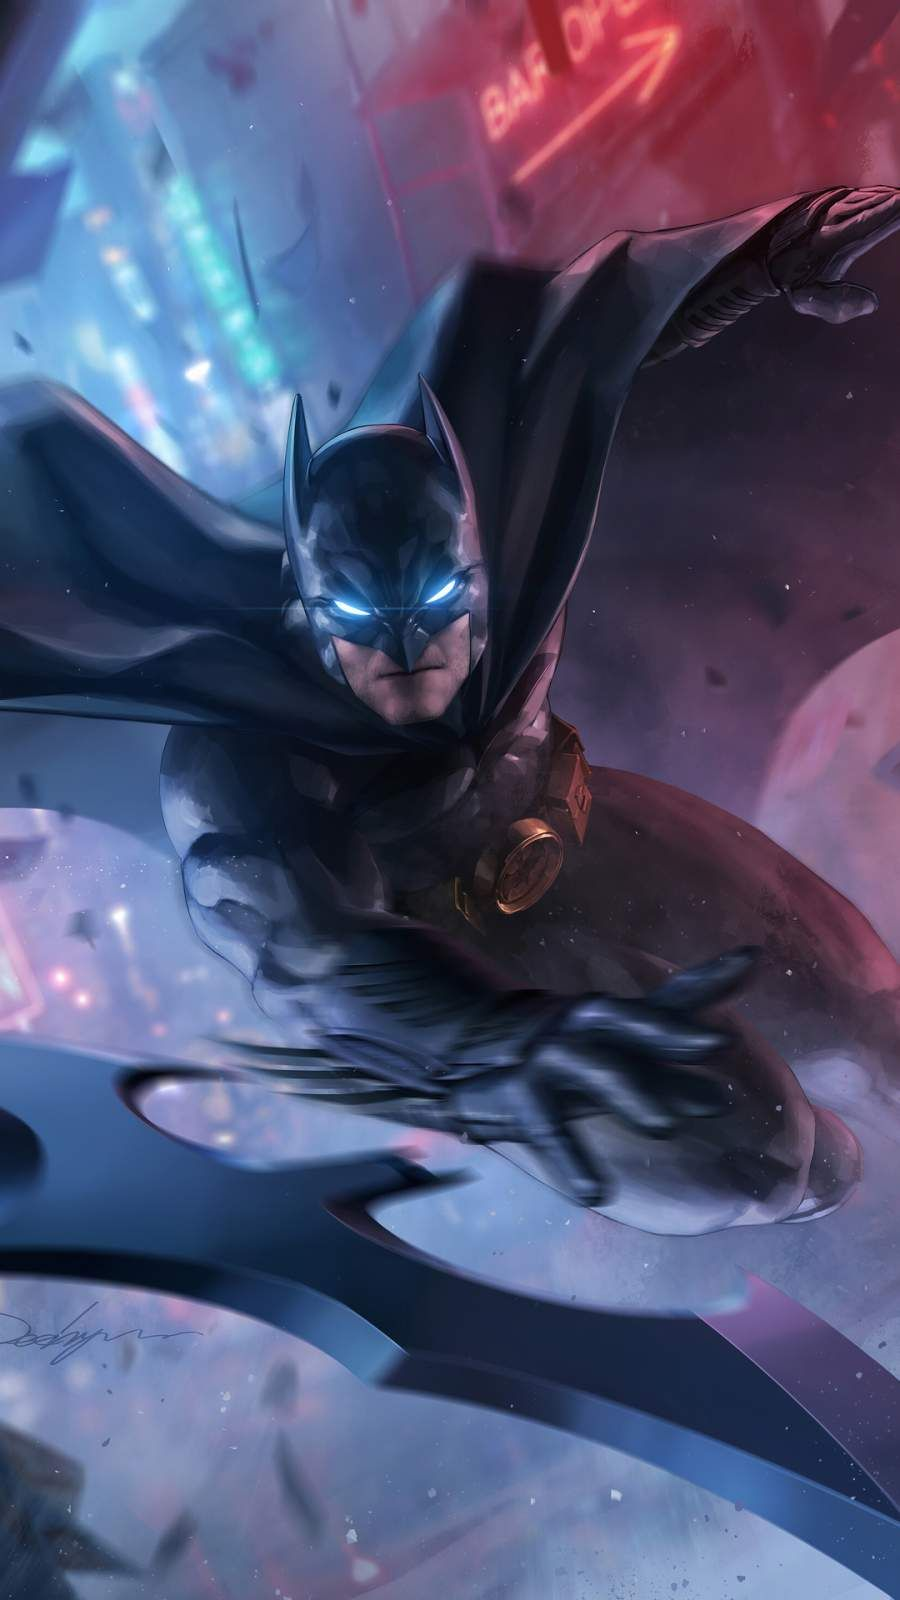 Download Batman Attack Iphone Wallpaper Top Free Awesome